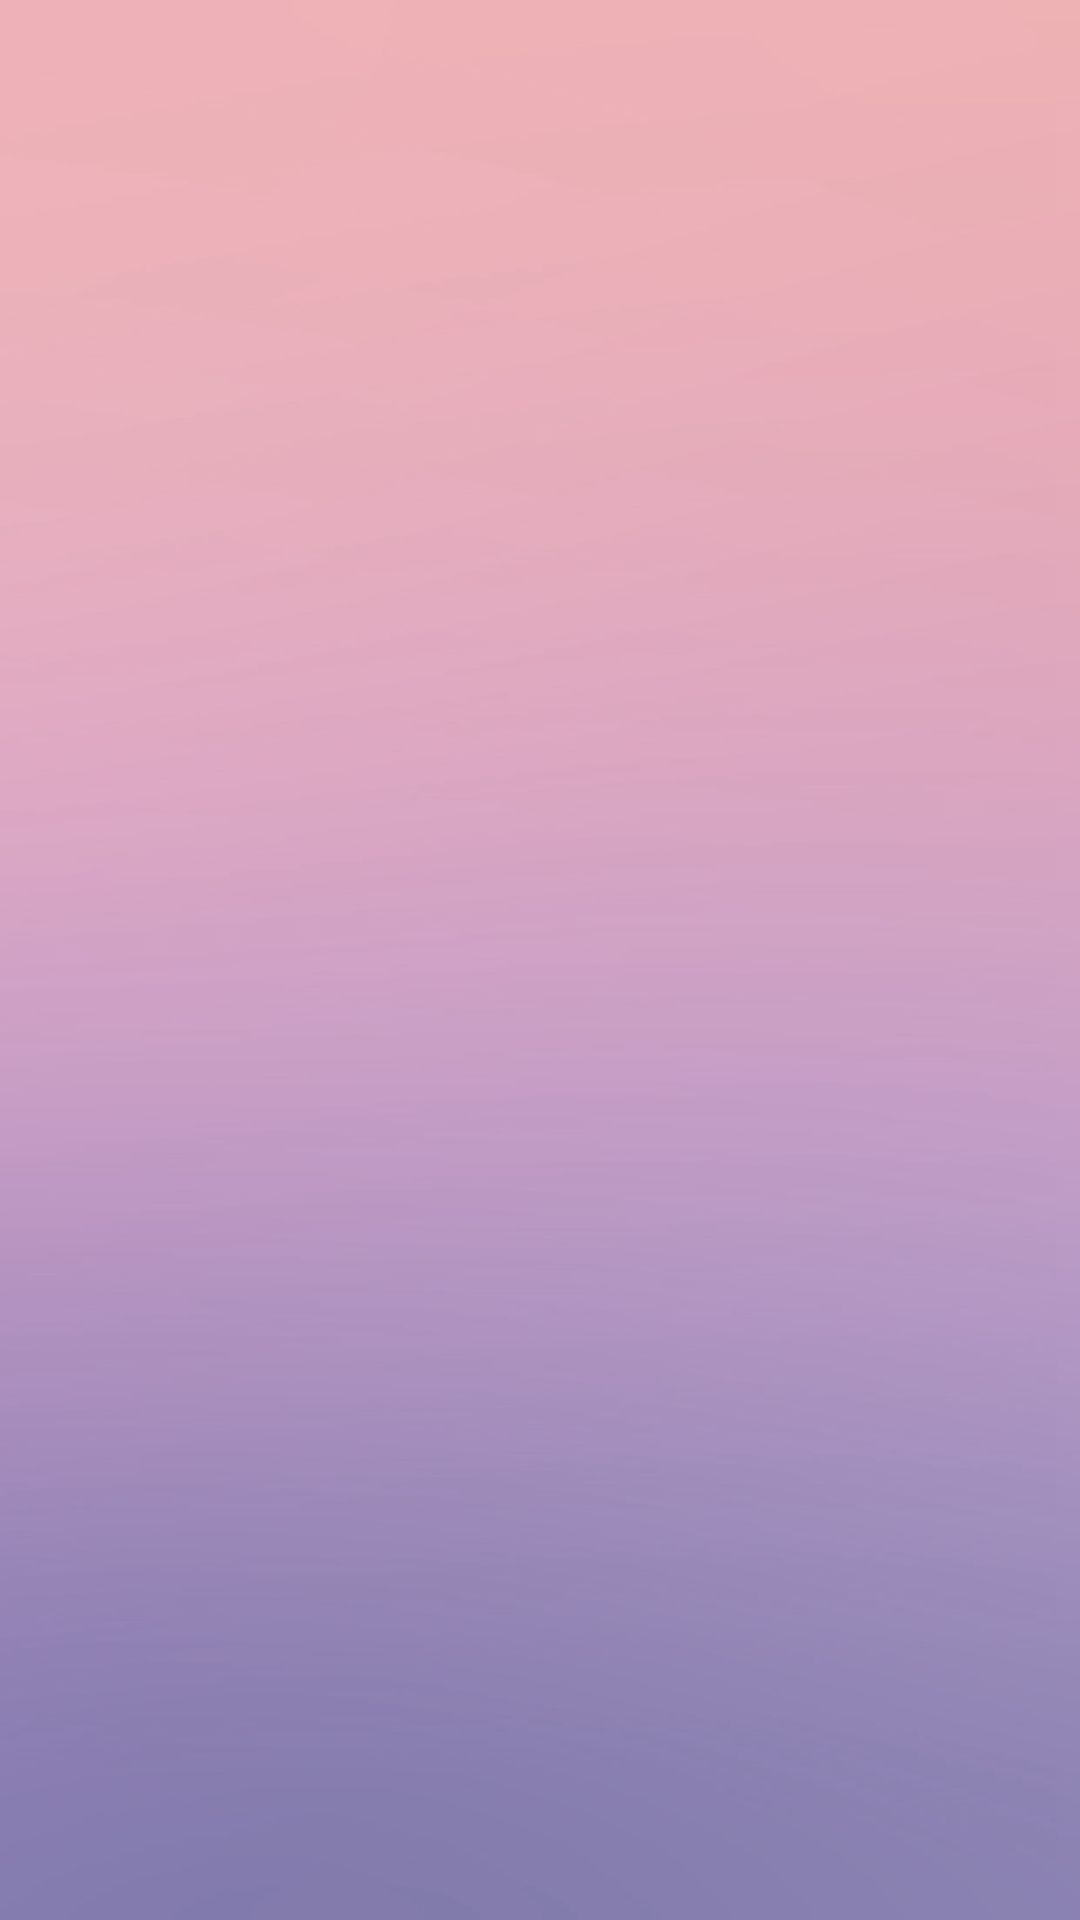 Wallpaper iphone violet - Pink Blue Purple Harmony Gradation Blur Iphone 6 Wallpaper